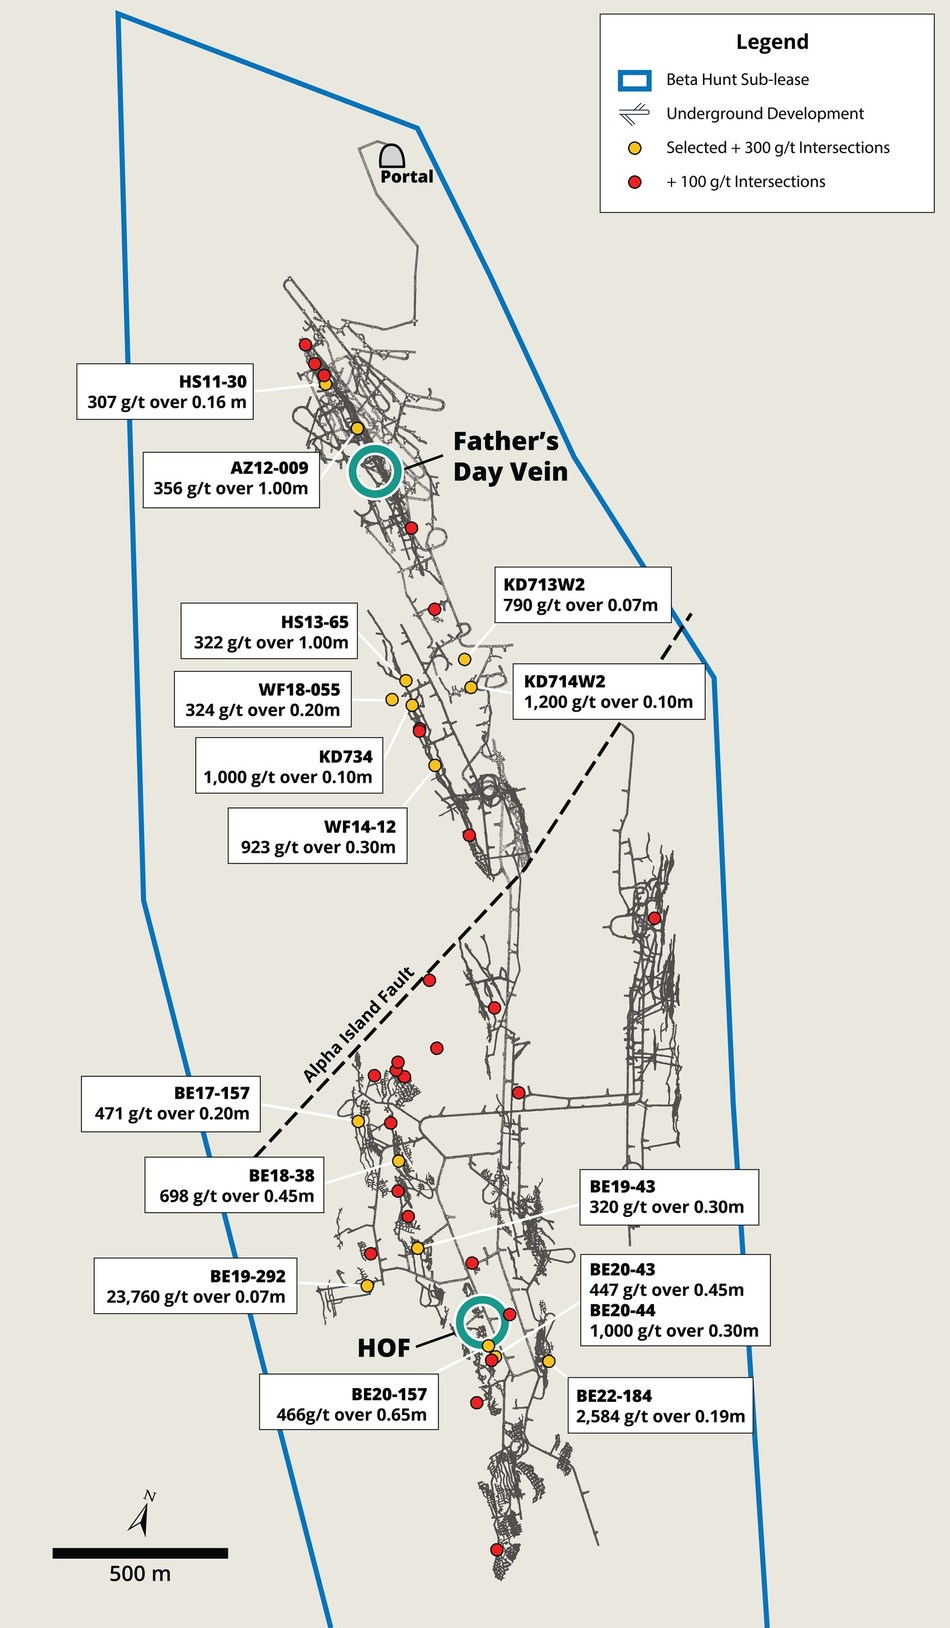 Figure 4 – Historic Drilling – Selected High Grade Intersections (100+ g/t) (CNW Group/RNC Minerals)